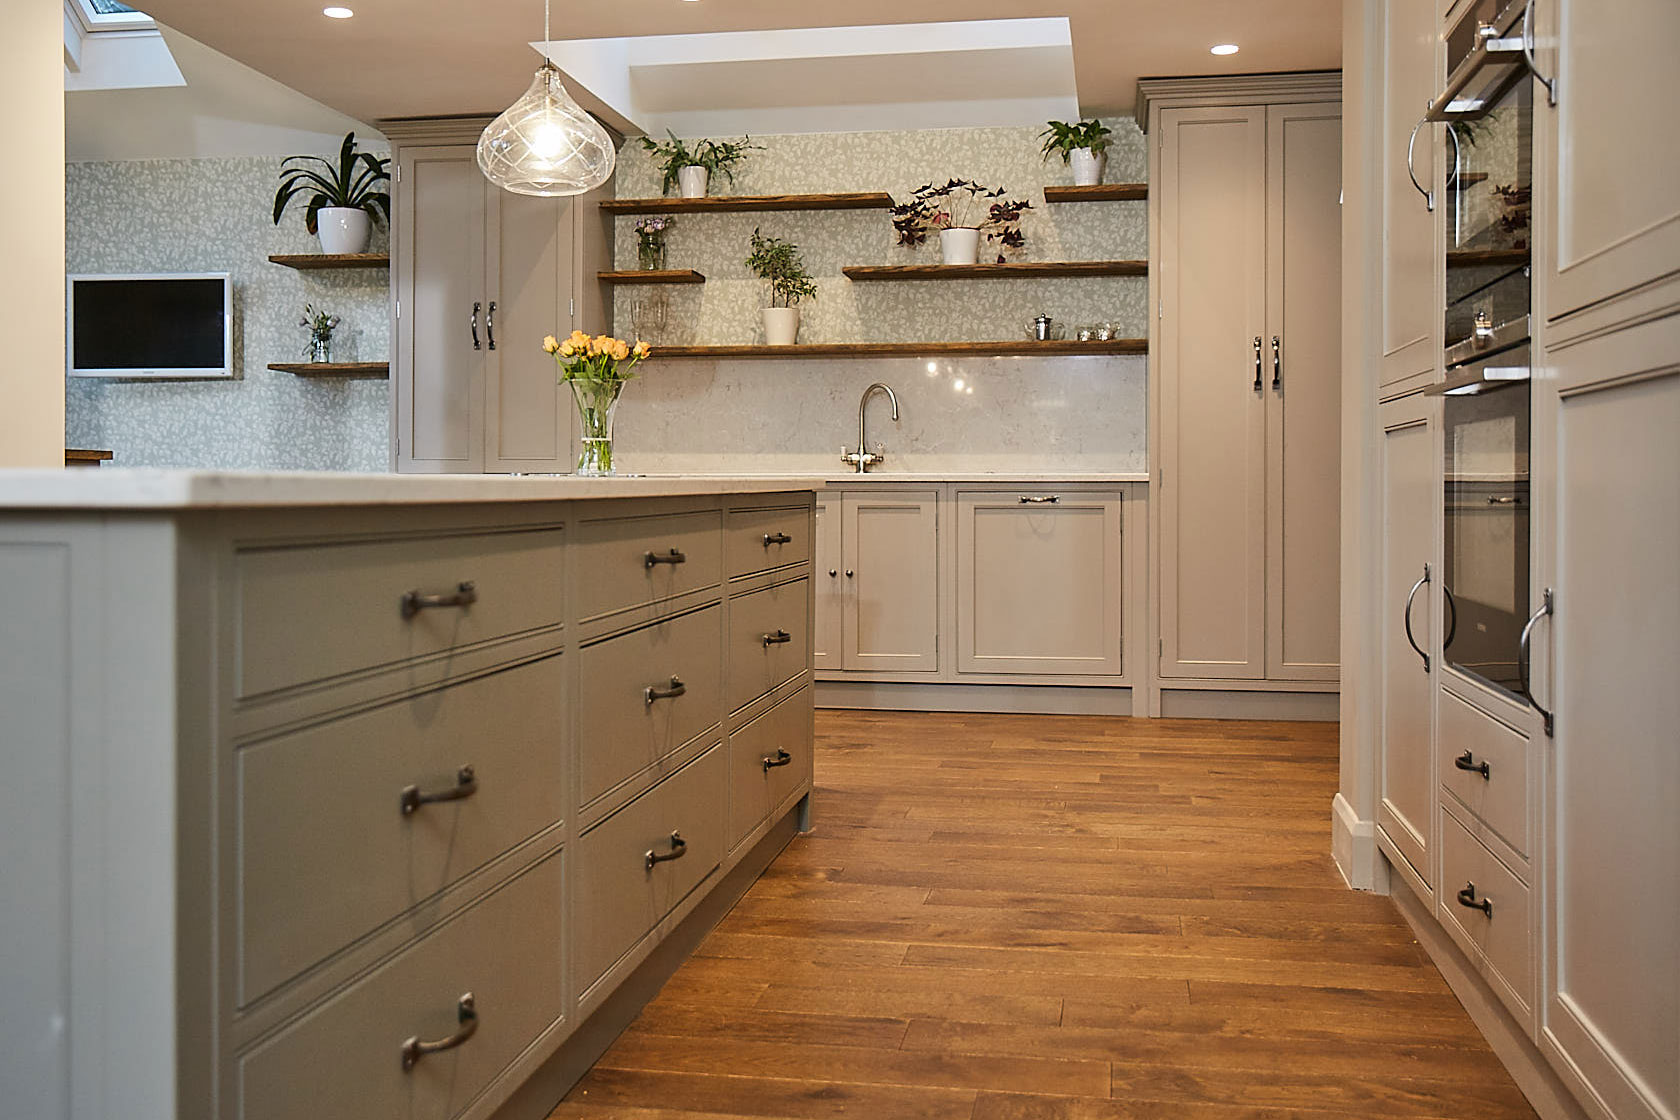 Painted pan drawers with pull handles and white quartz worktop